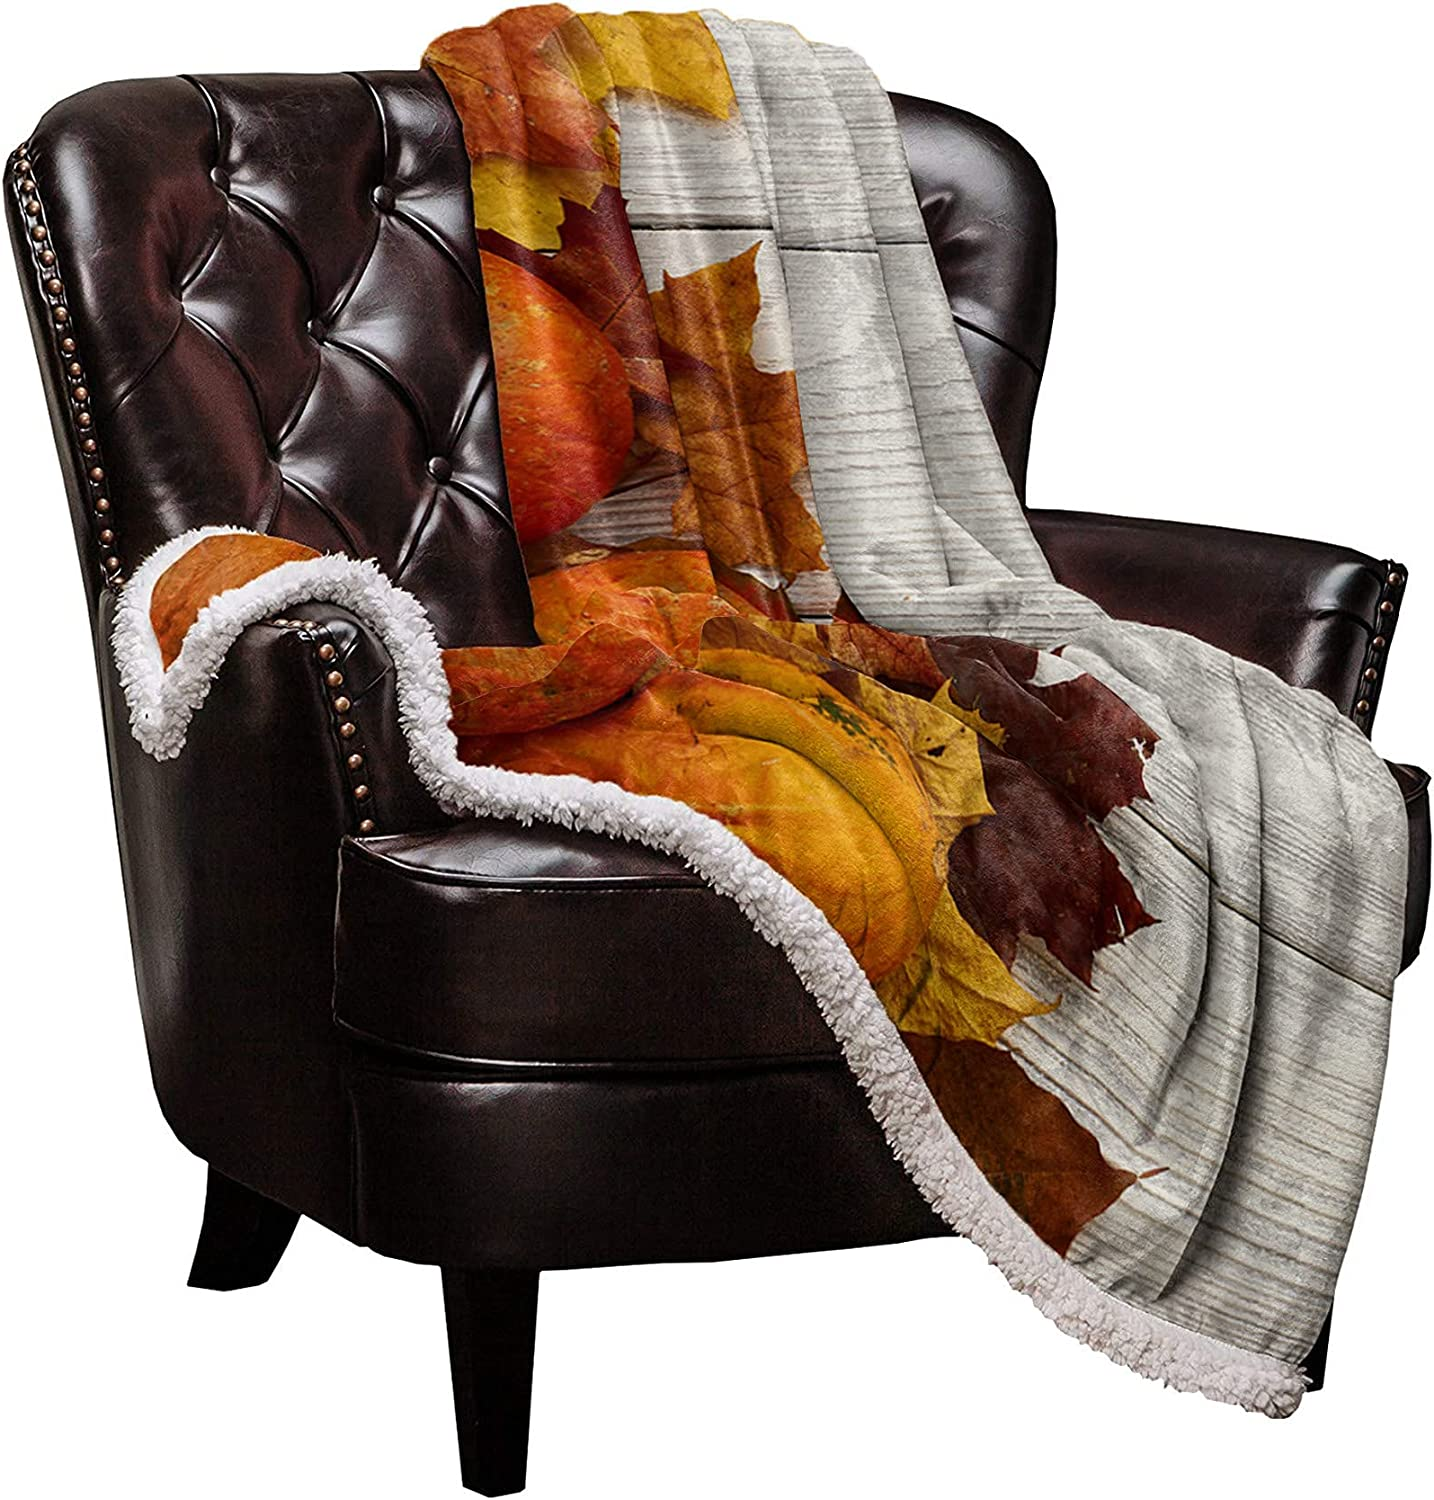 DaringOne Max 53% OFF Thanksgiving Sherpa Fleece Flannel Blanket Doub Throw Online limited product